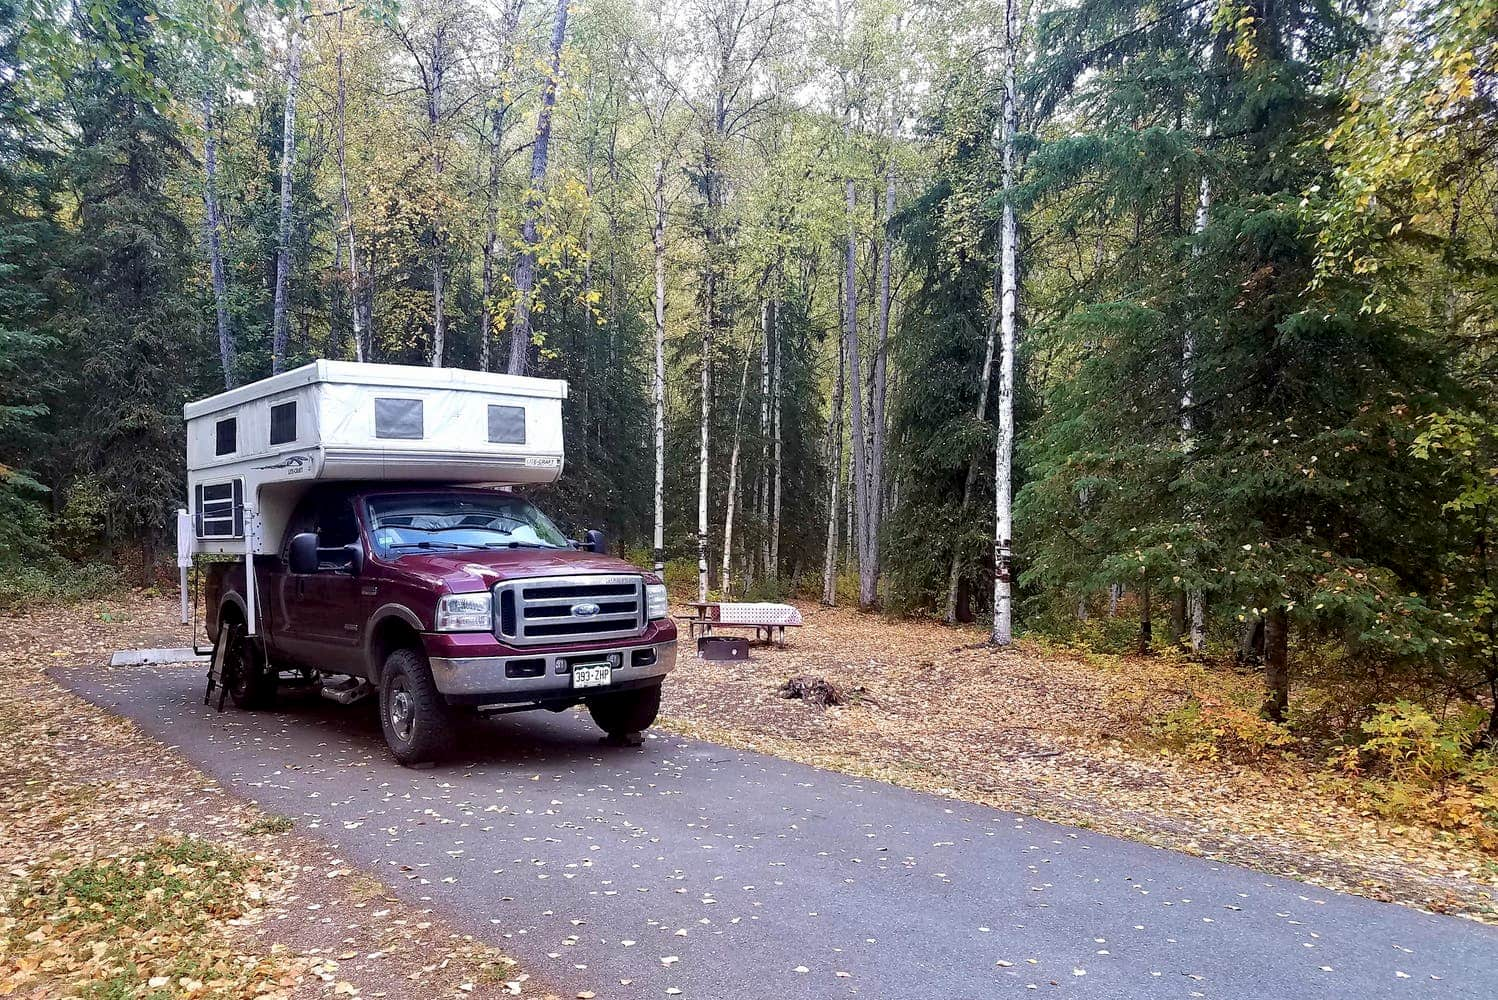 Truck with camper parked in a campsite surrounded by fall foliage near Anchorage.